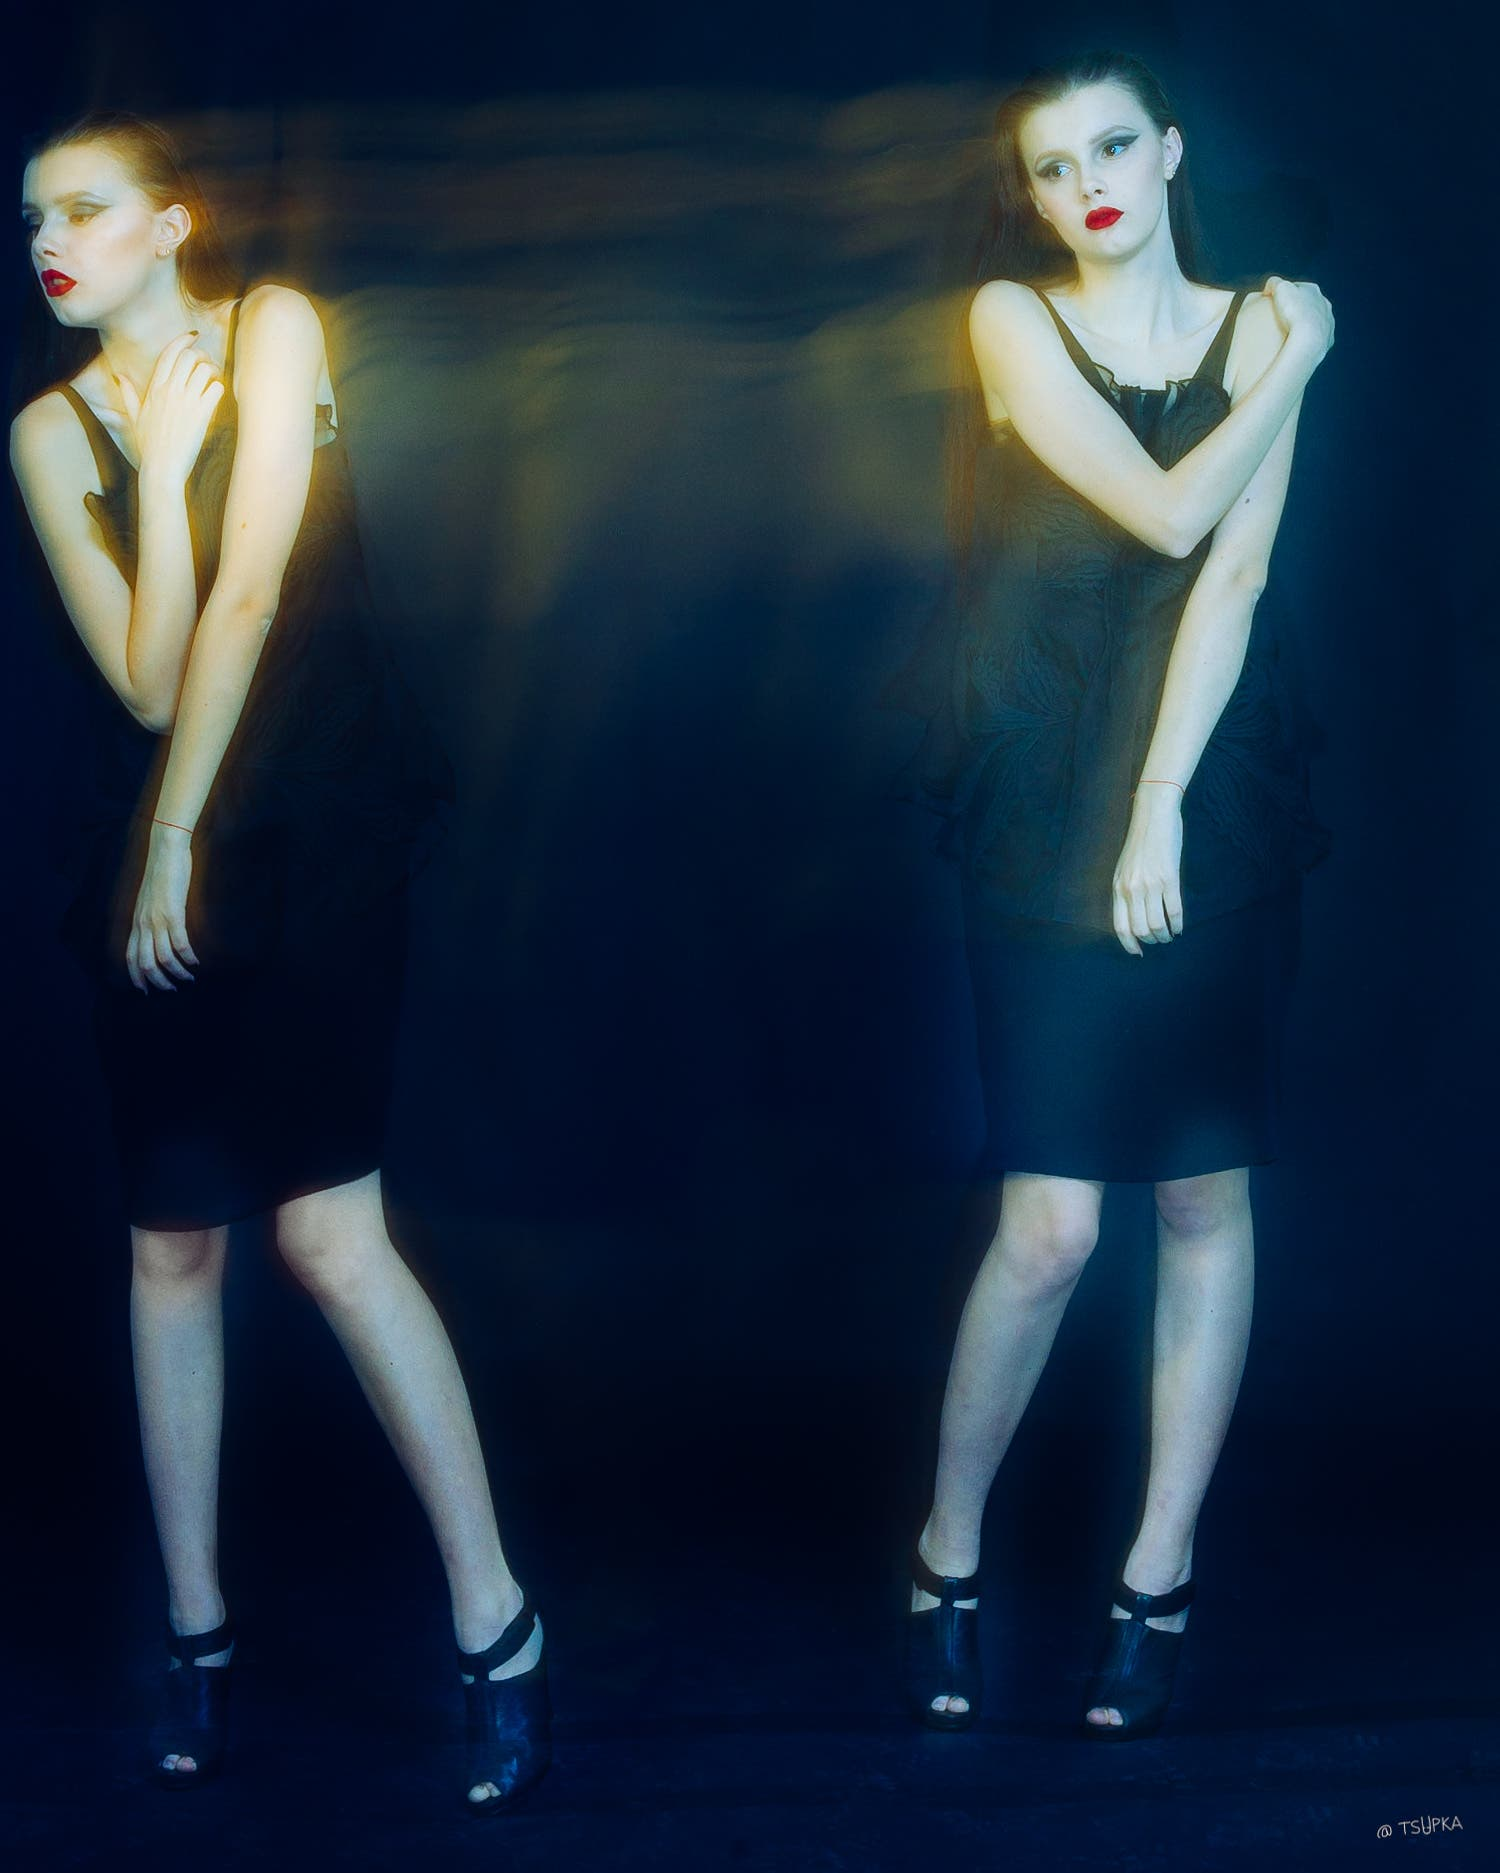 How Ivan Tsupka Shot These Striking, Ghostly Photos